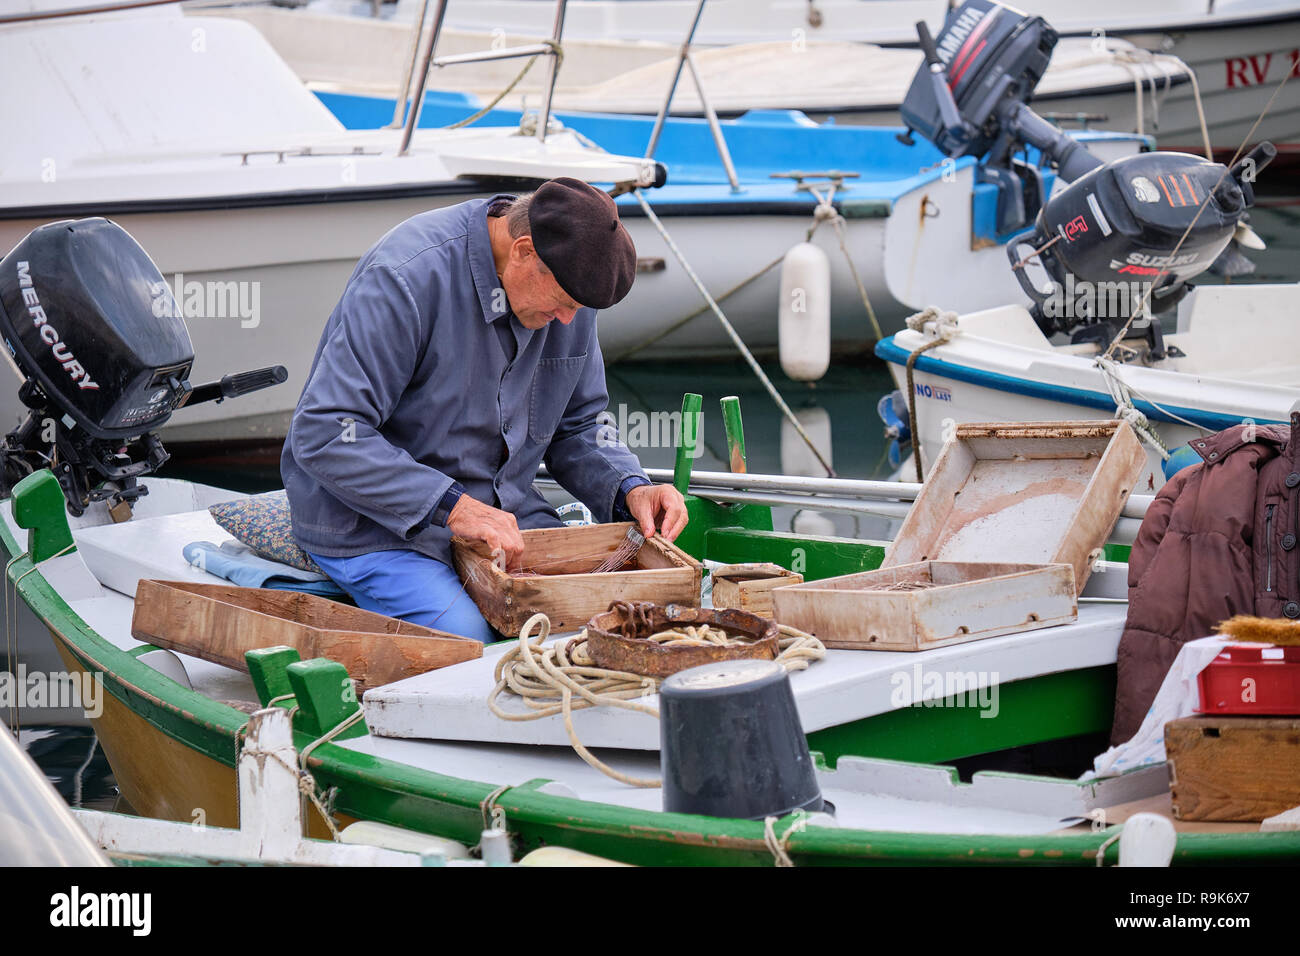 Fisherman wearing frock and beret in harbour of Roving, preparing and organising his box of tackles before going to sea - Stock Image